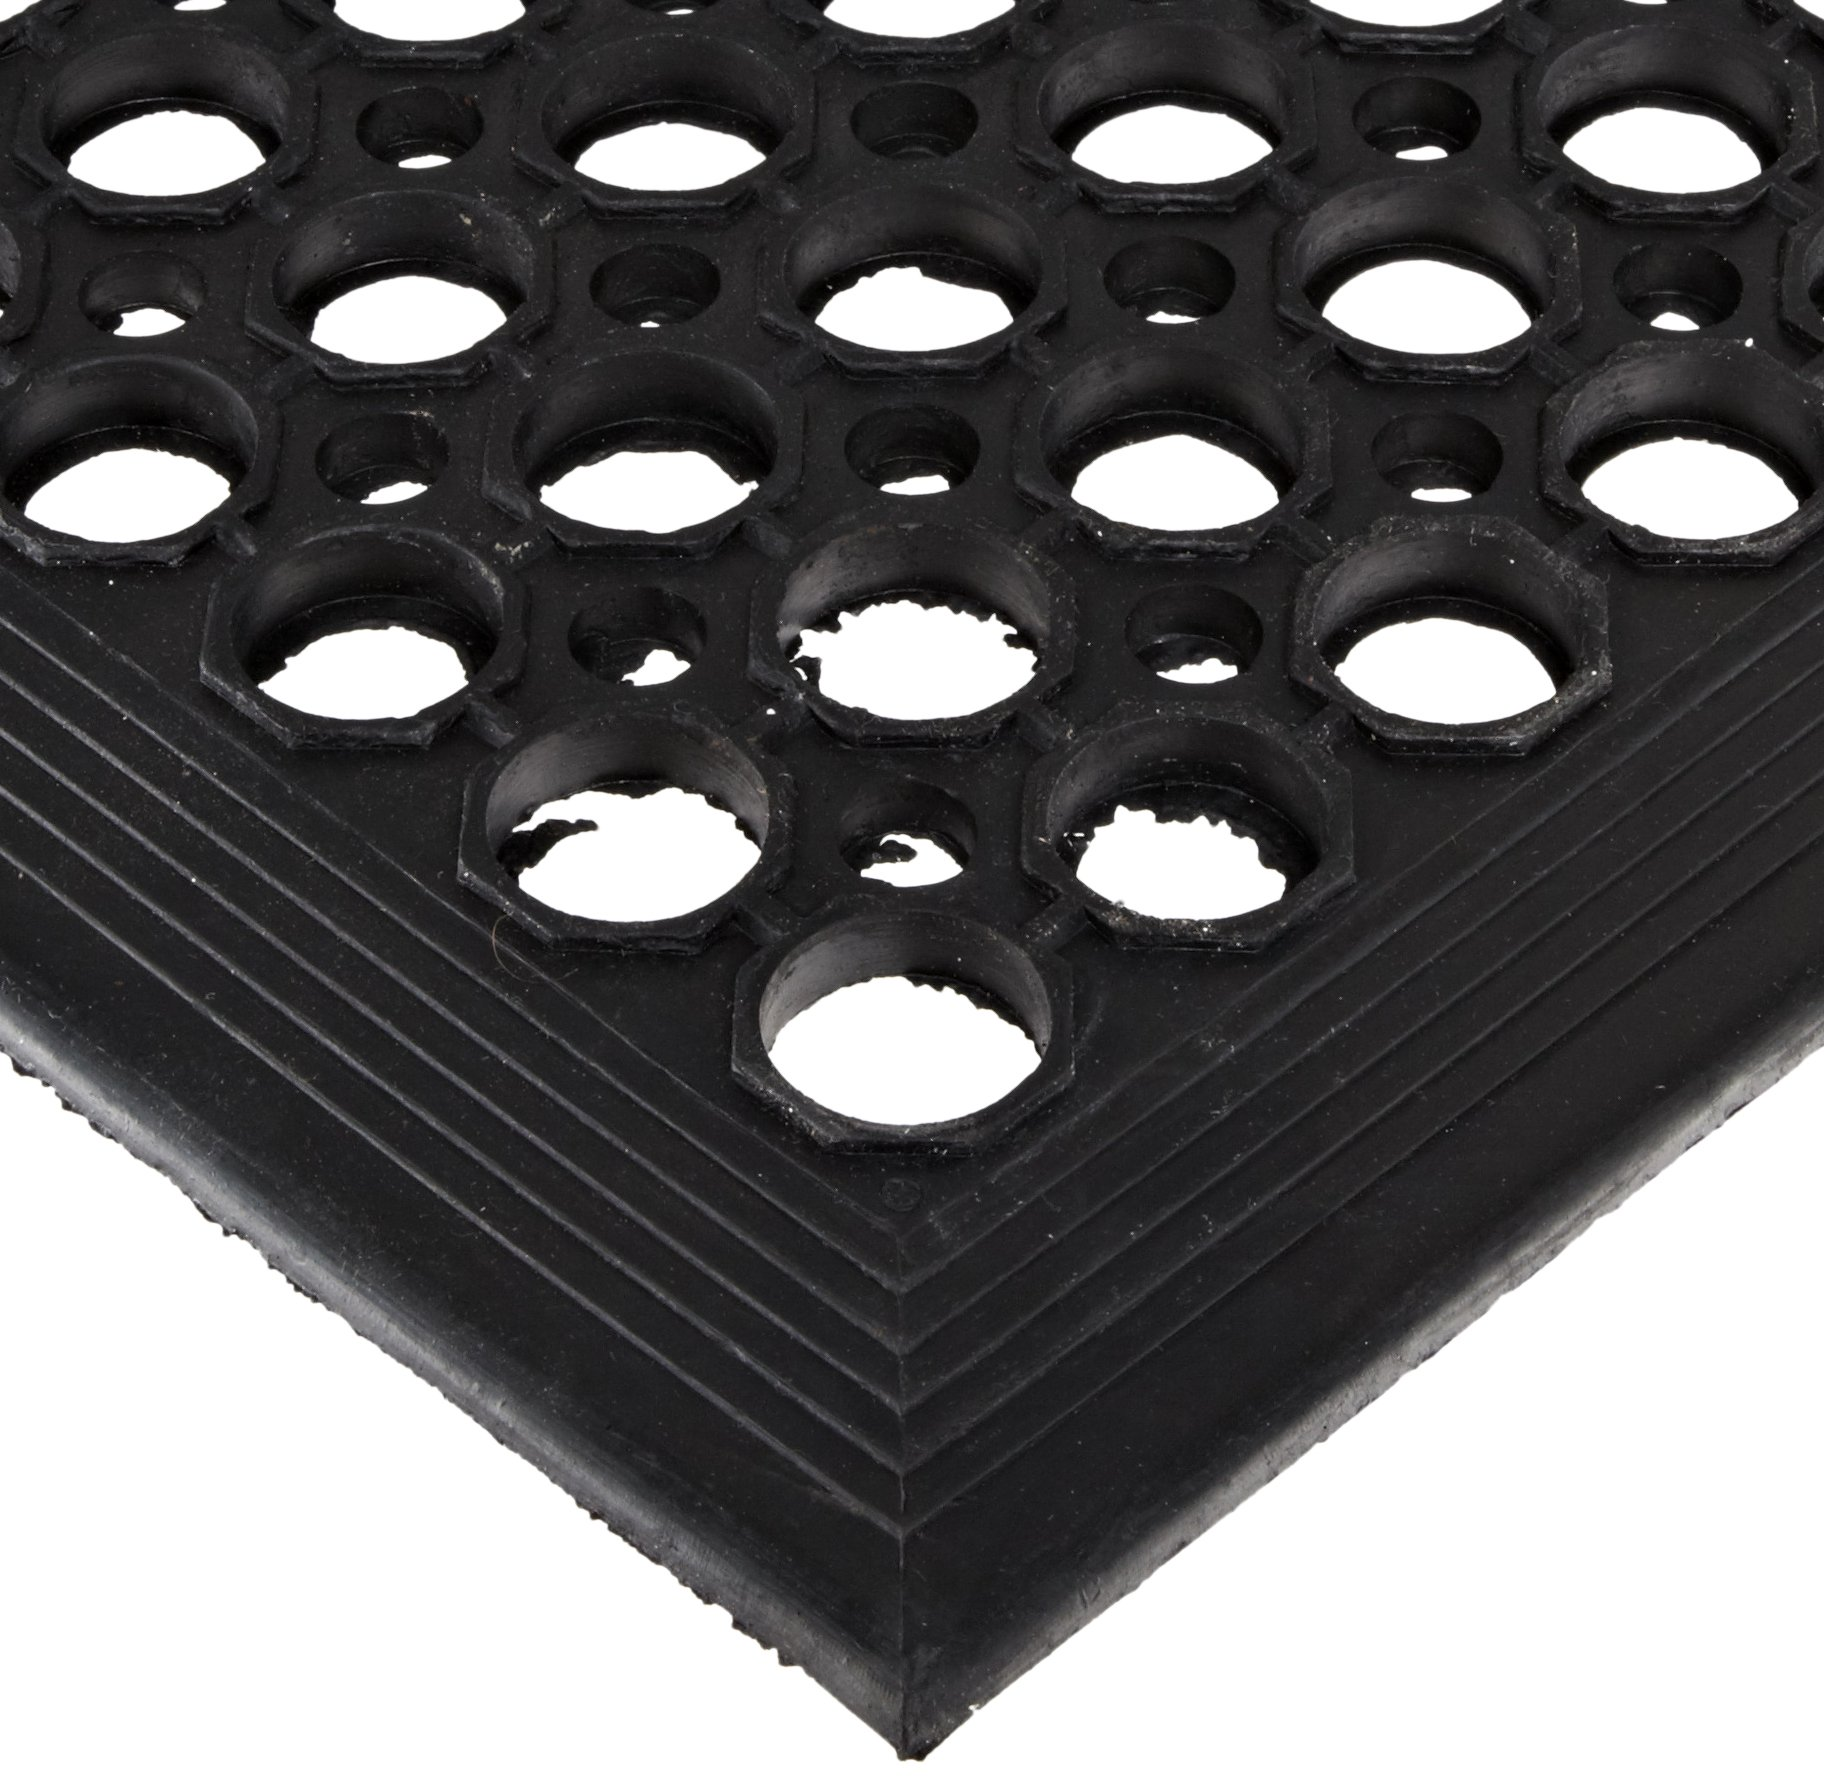 NoTrax 504 General-Purpose Rubber Beveled Drain-Step Anti-Fatigue/Anti-Slip Floor Mat, for Wet Areas, 3' Width x 5' Length x 1/2'' Thickness, Black by NoTrax Floor Matting (Image #1)